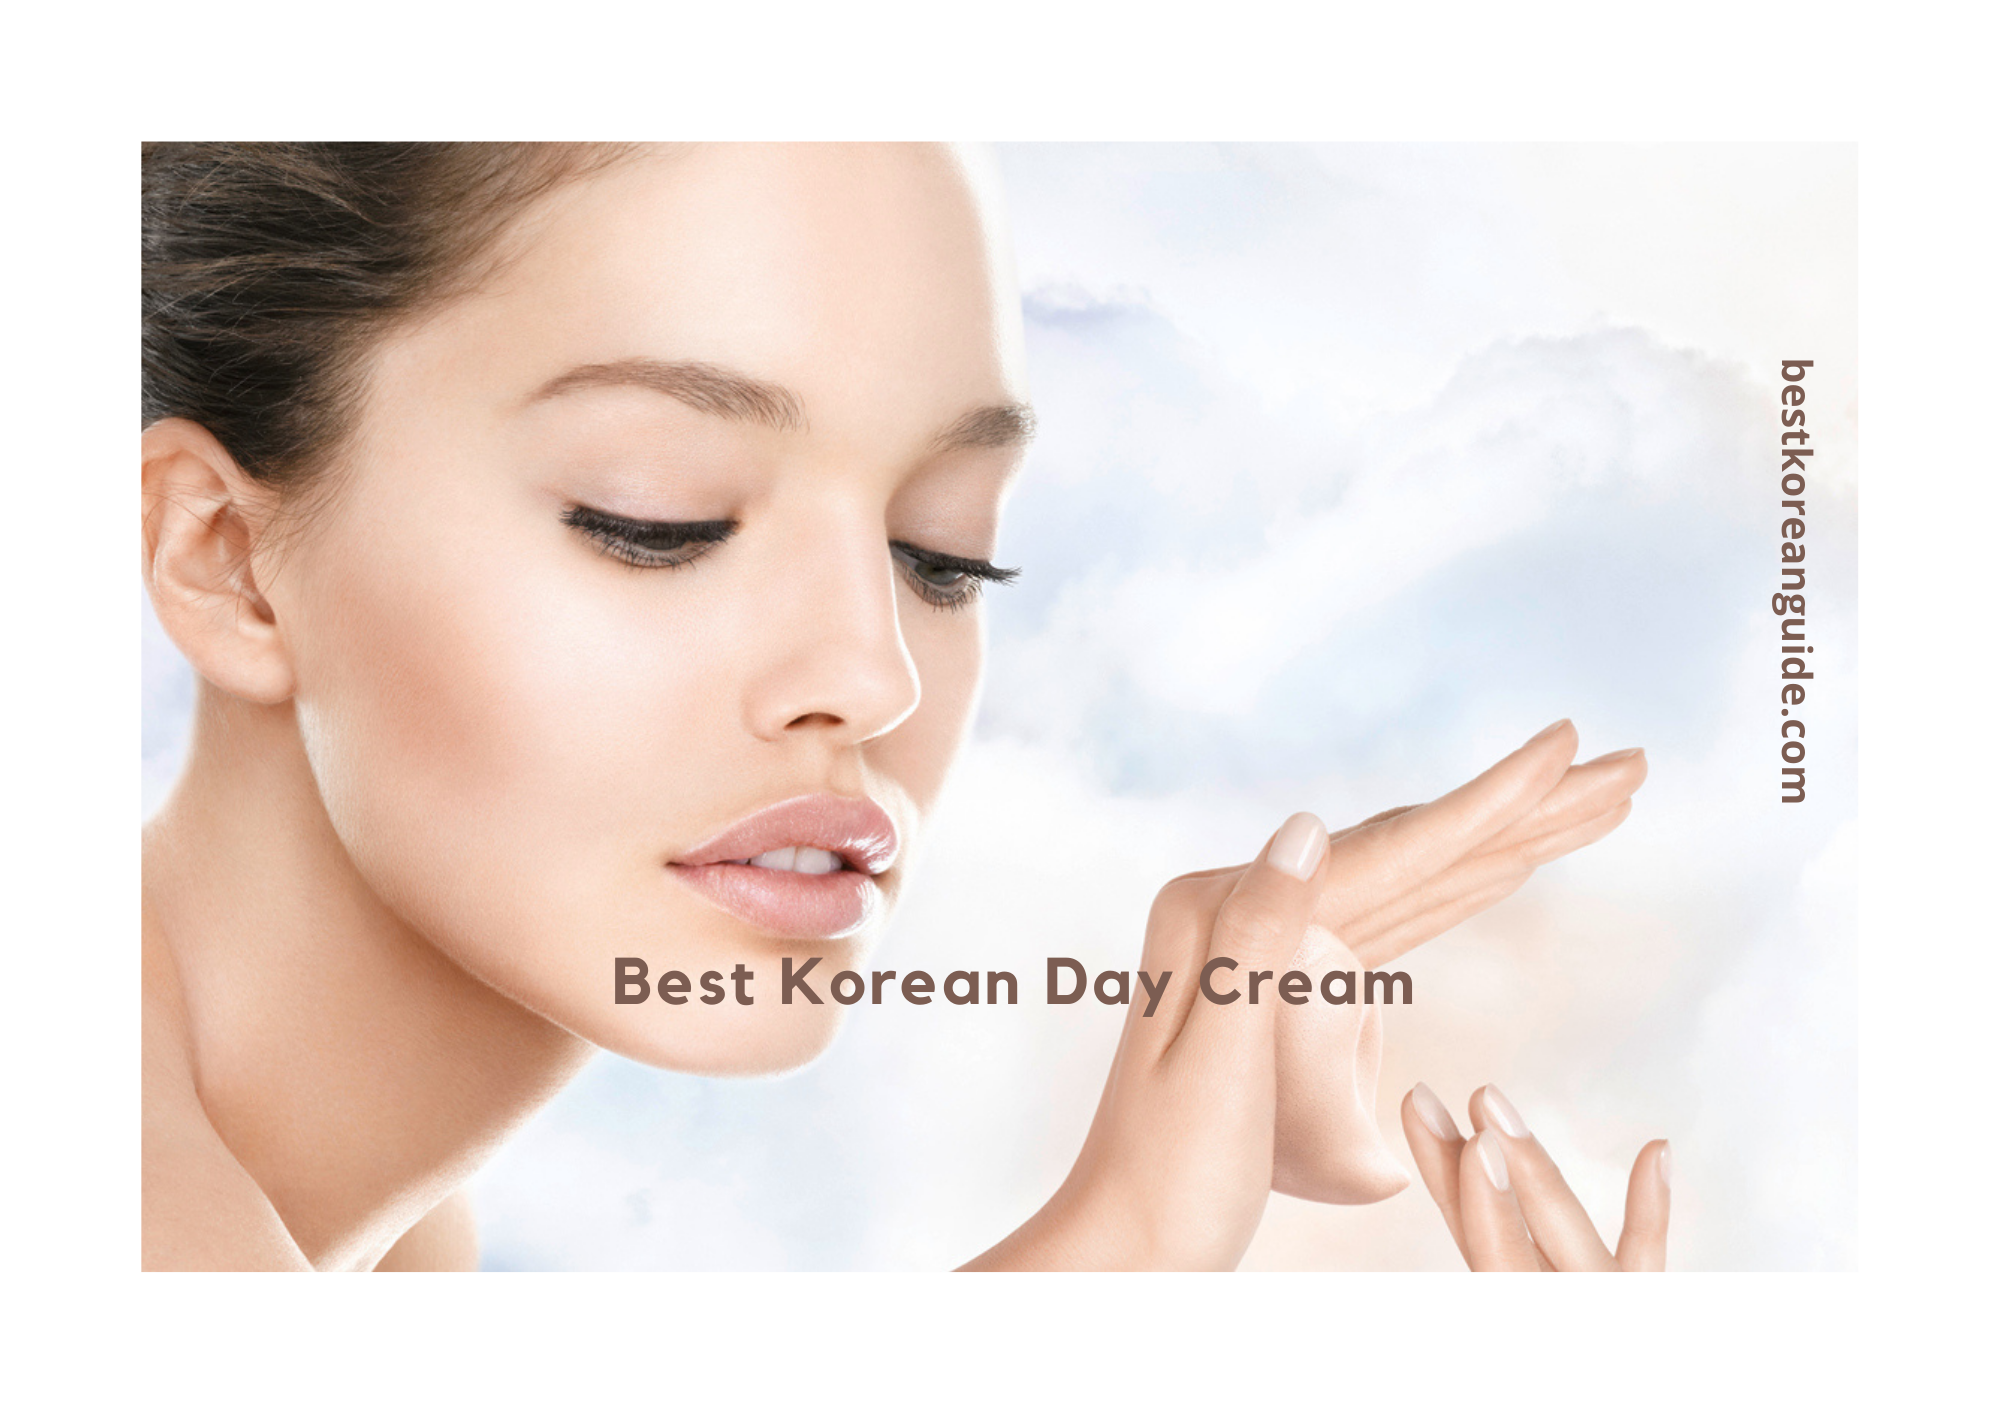 Best Korean Day Cream